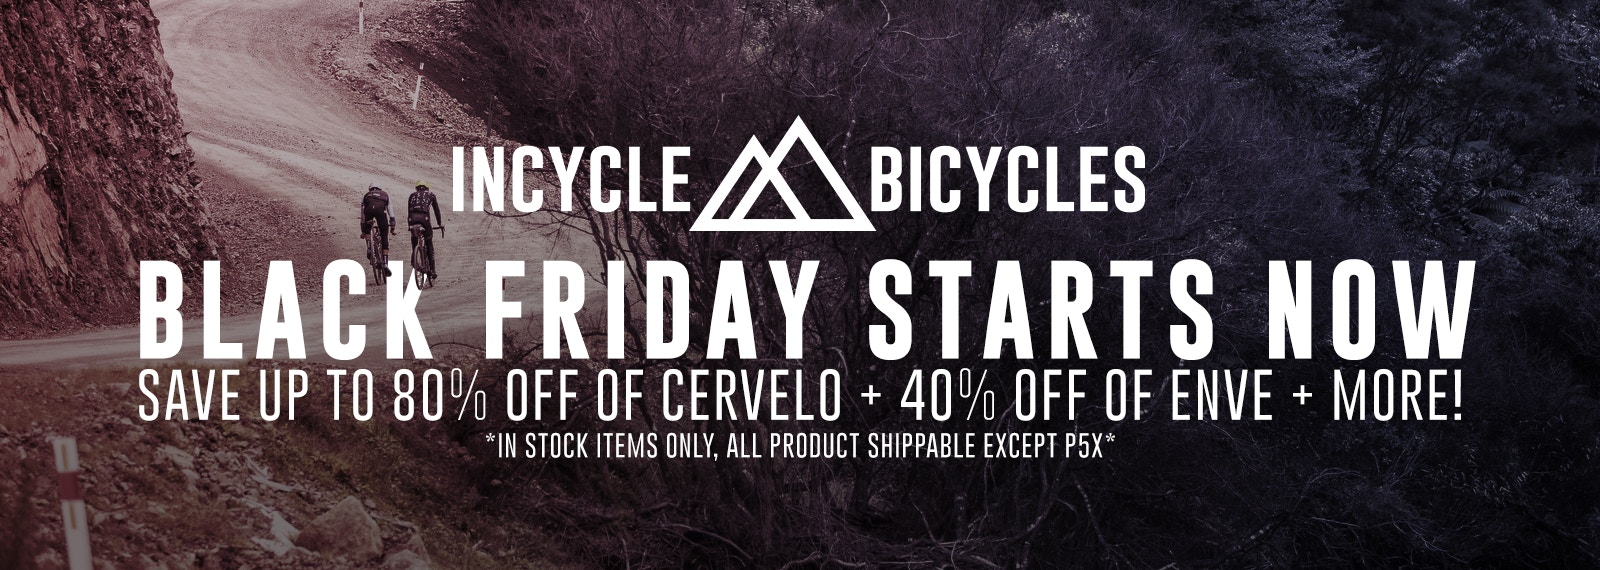 Black Friday starts now at InCycle Bicycles! Save up to 80% off Cervelo Bikes, 40% off Enve Wheels, and more! Sale applies to in-stock items only.